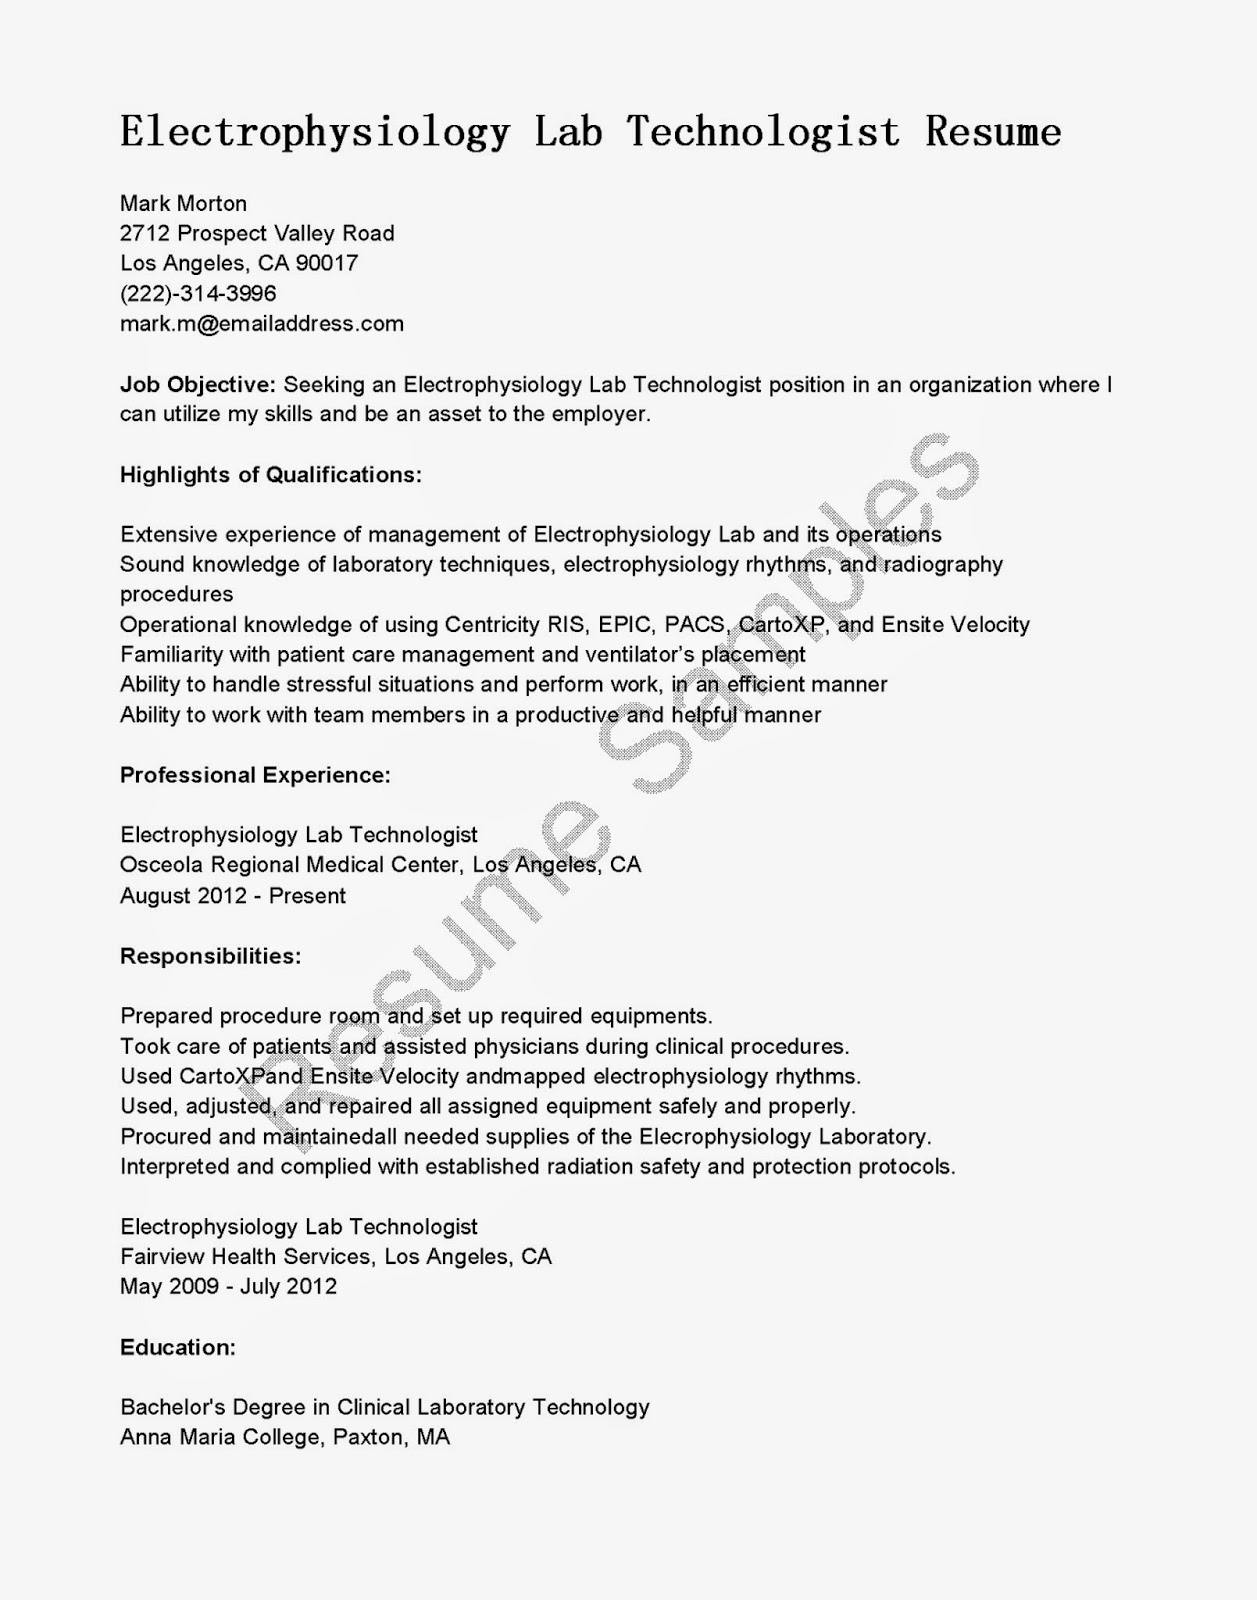 Lab Technician Resume Examples Resume Samples Electrophysiology Lab Technologist Resume